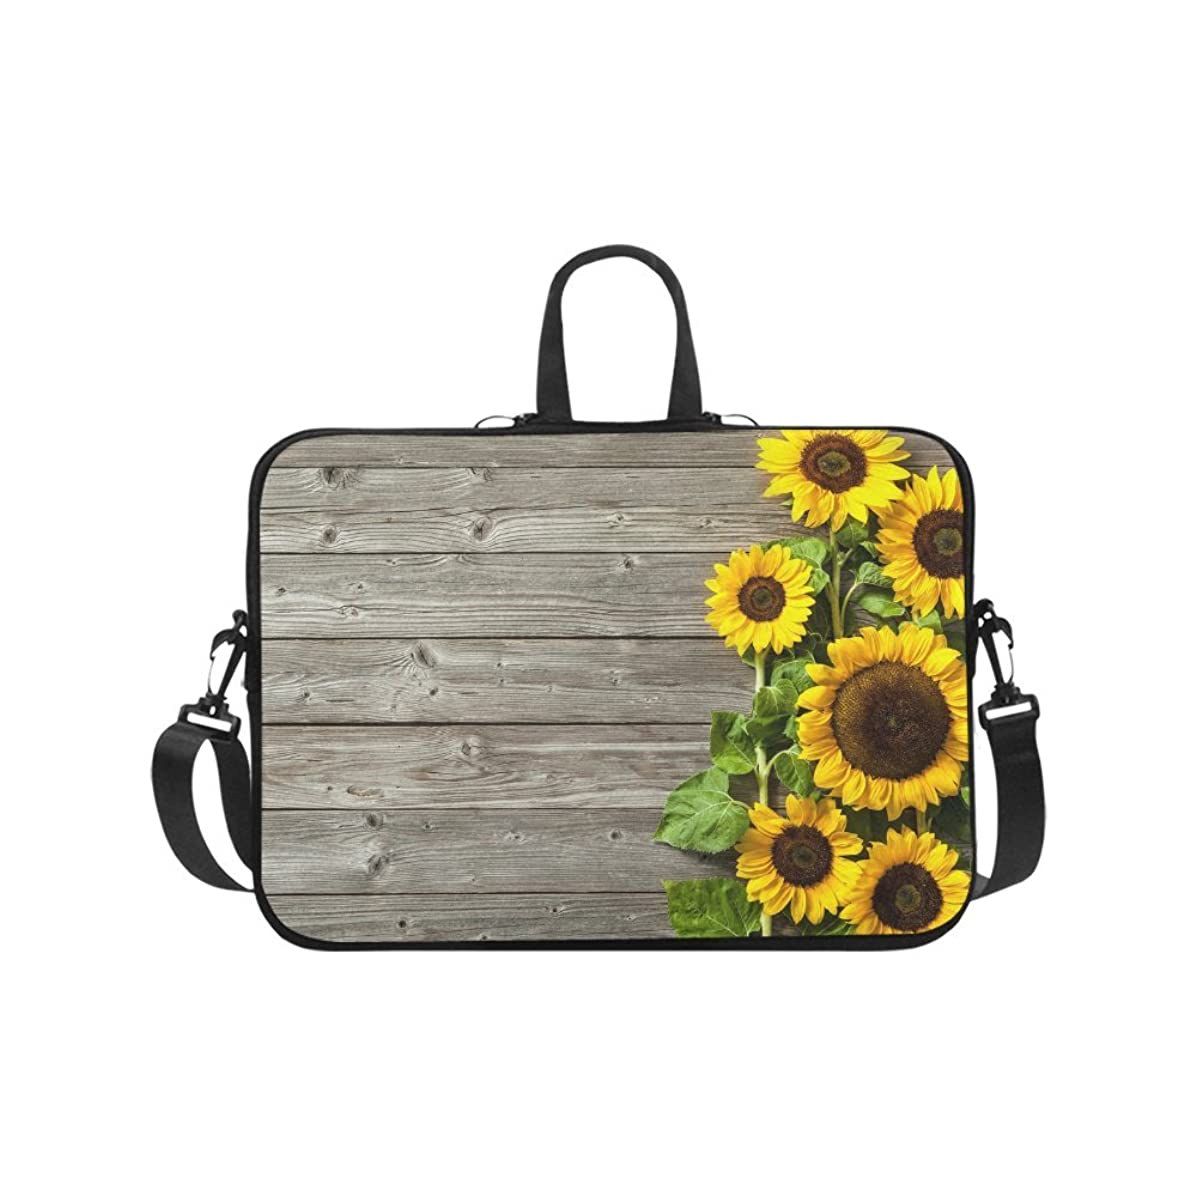 InterestPrint Autumn Sunflowers Wood Pattern Laptop Sleeve Shoulder Bag with Handle & Strap, Notebook Computer Carrying Bag 17 17.3 Inch for MacBook Dell HP Acer Woman Man